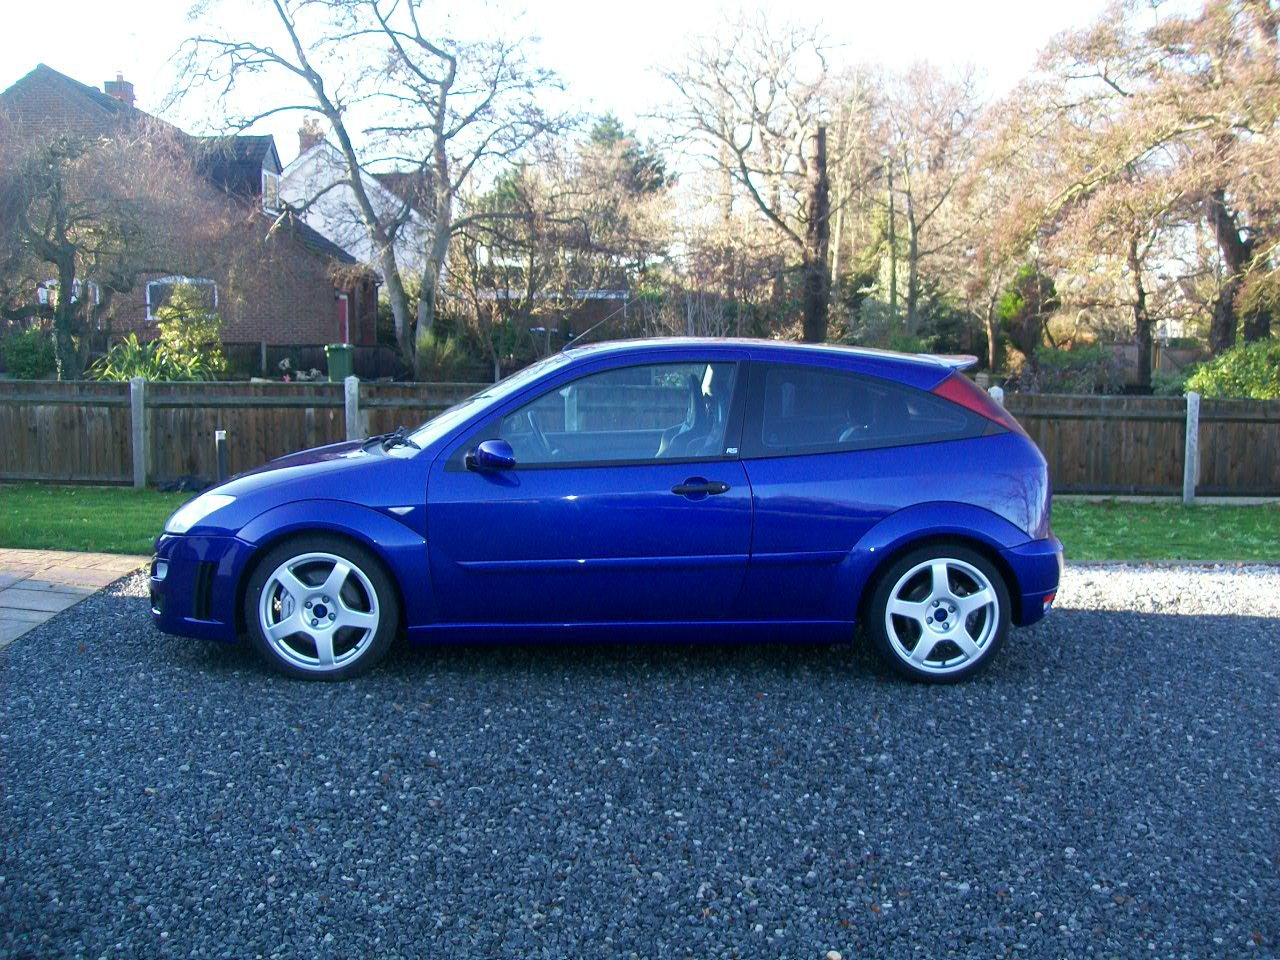 2003 Ford focus rs mk1 For Sale (picture 2 of 4)